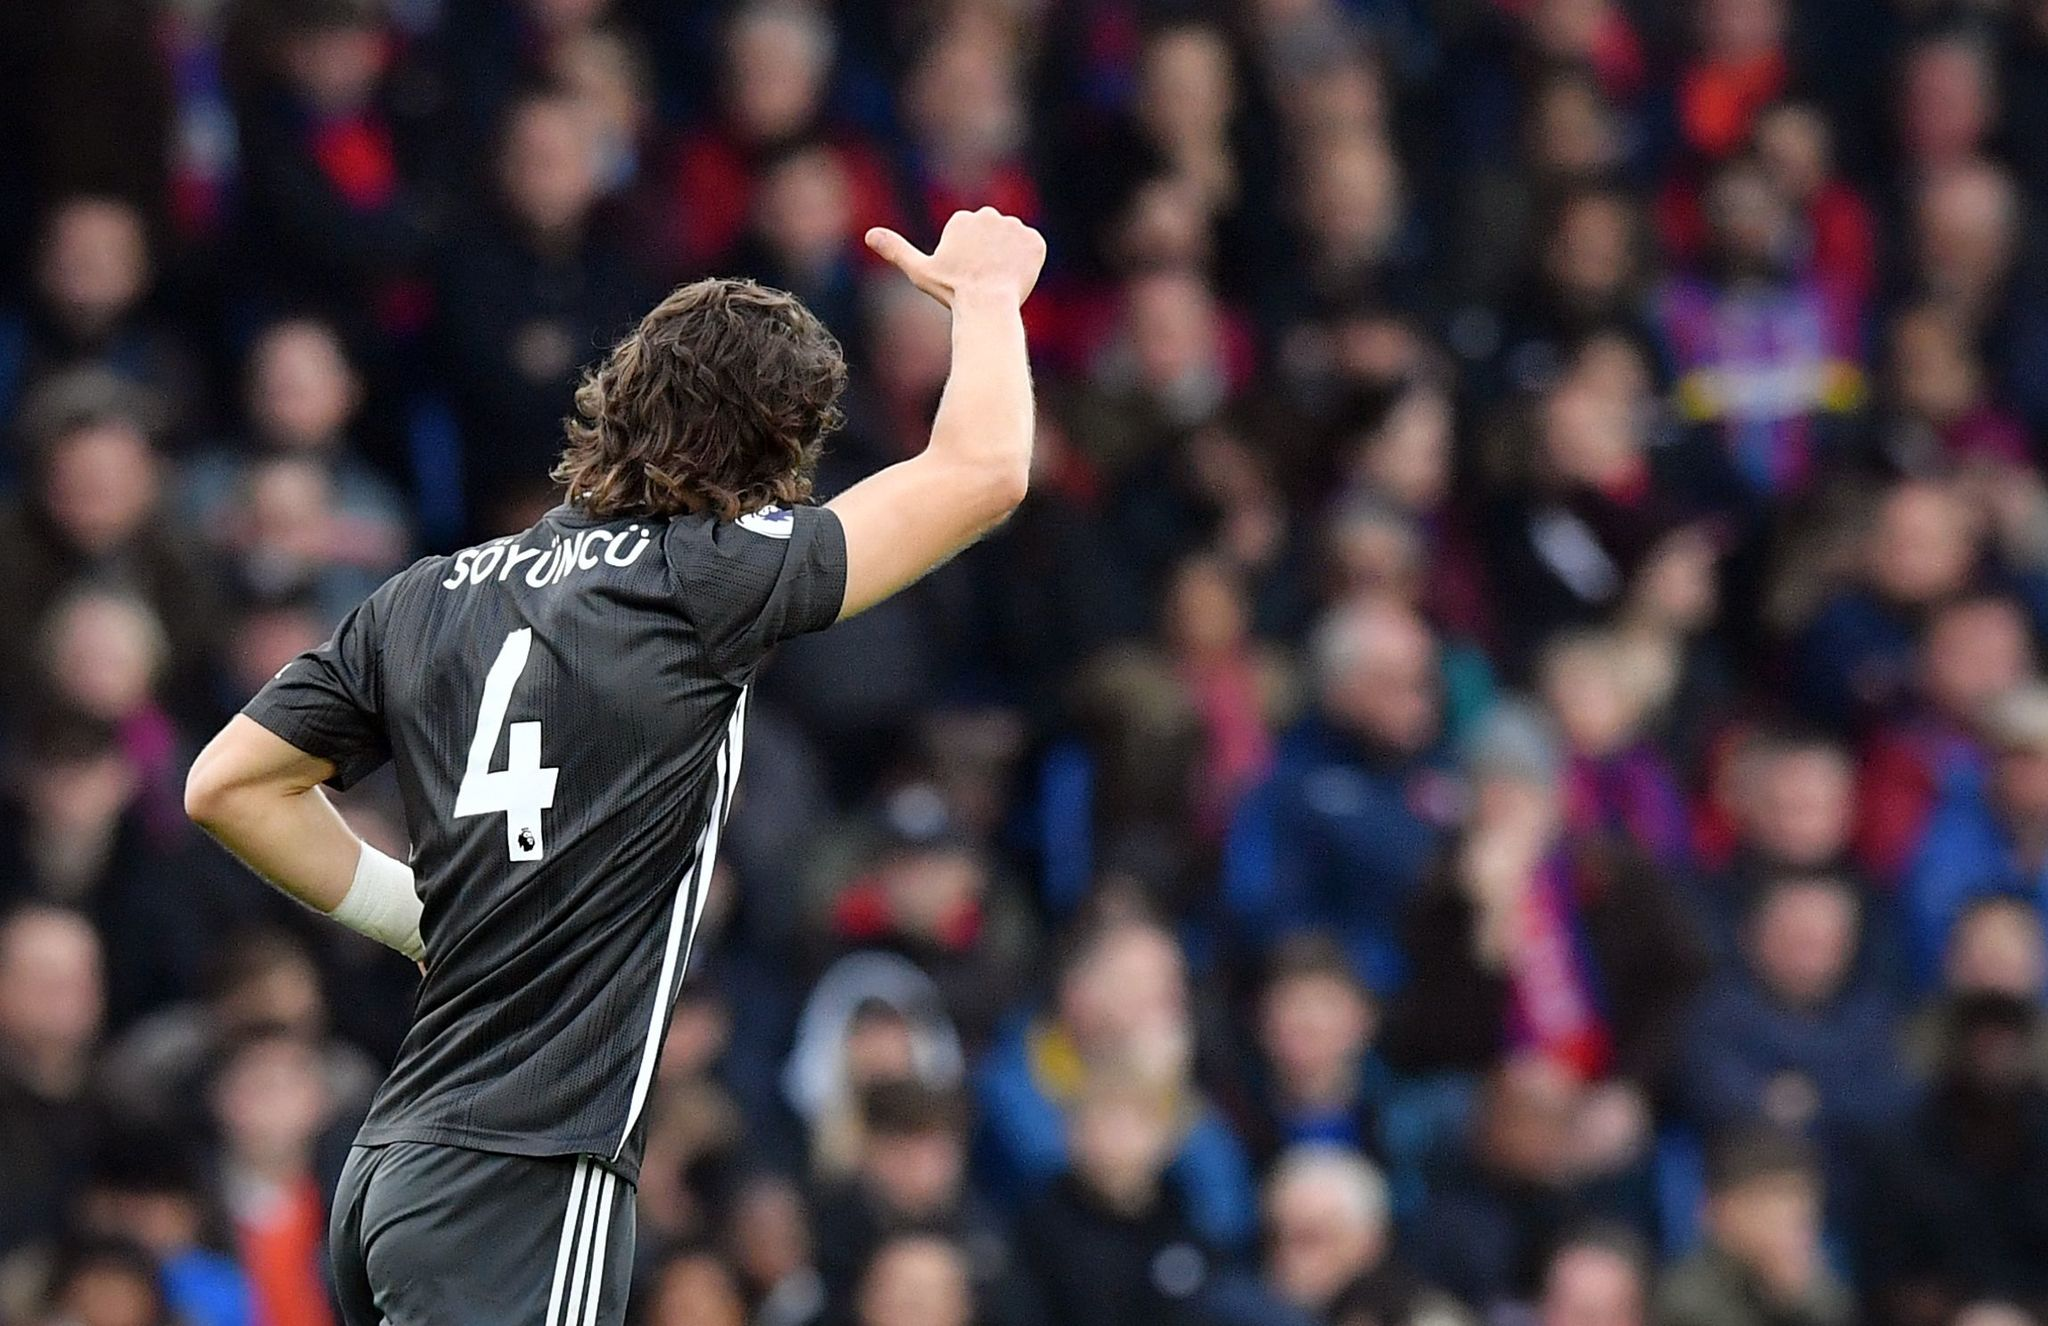 <HIT>Leicester</HIT> Citys Turkish defender Caglar Soyuncu celebrates scoring the opening goal during the English Premier League football match between Crystal Palace and <HIT>Leicester</HIT> City at Selhurst Park in south London on November 3, 2019. (Photo by Ben STANSALL / AFP) / RESTRICTED TO EDITORIAL USE. No use with unauthorized audio, video, data, fixture lists, club/league logos or live services. Online in-match use limited to 120 images. An additional 40 images may be used in extra time. No video emulation. Social media in-match use limited to 120 images. An additional 40 images may be used in extra time. No use in betting publications, games or single club/league/player publications. /